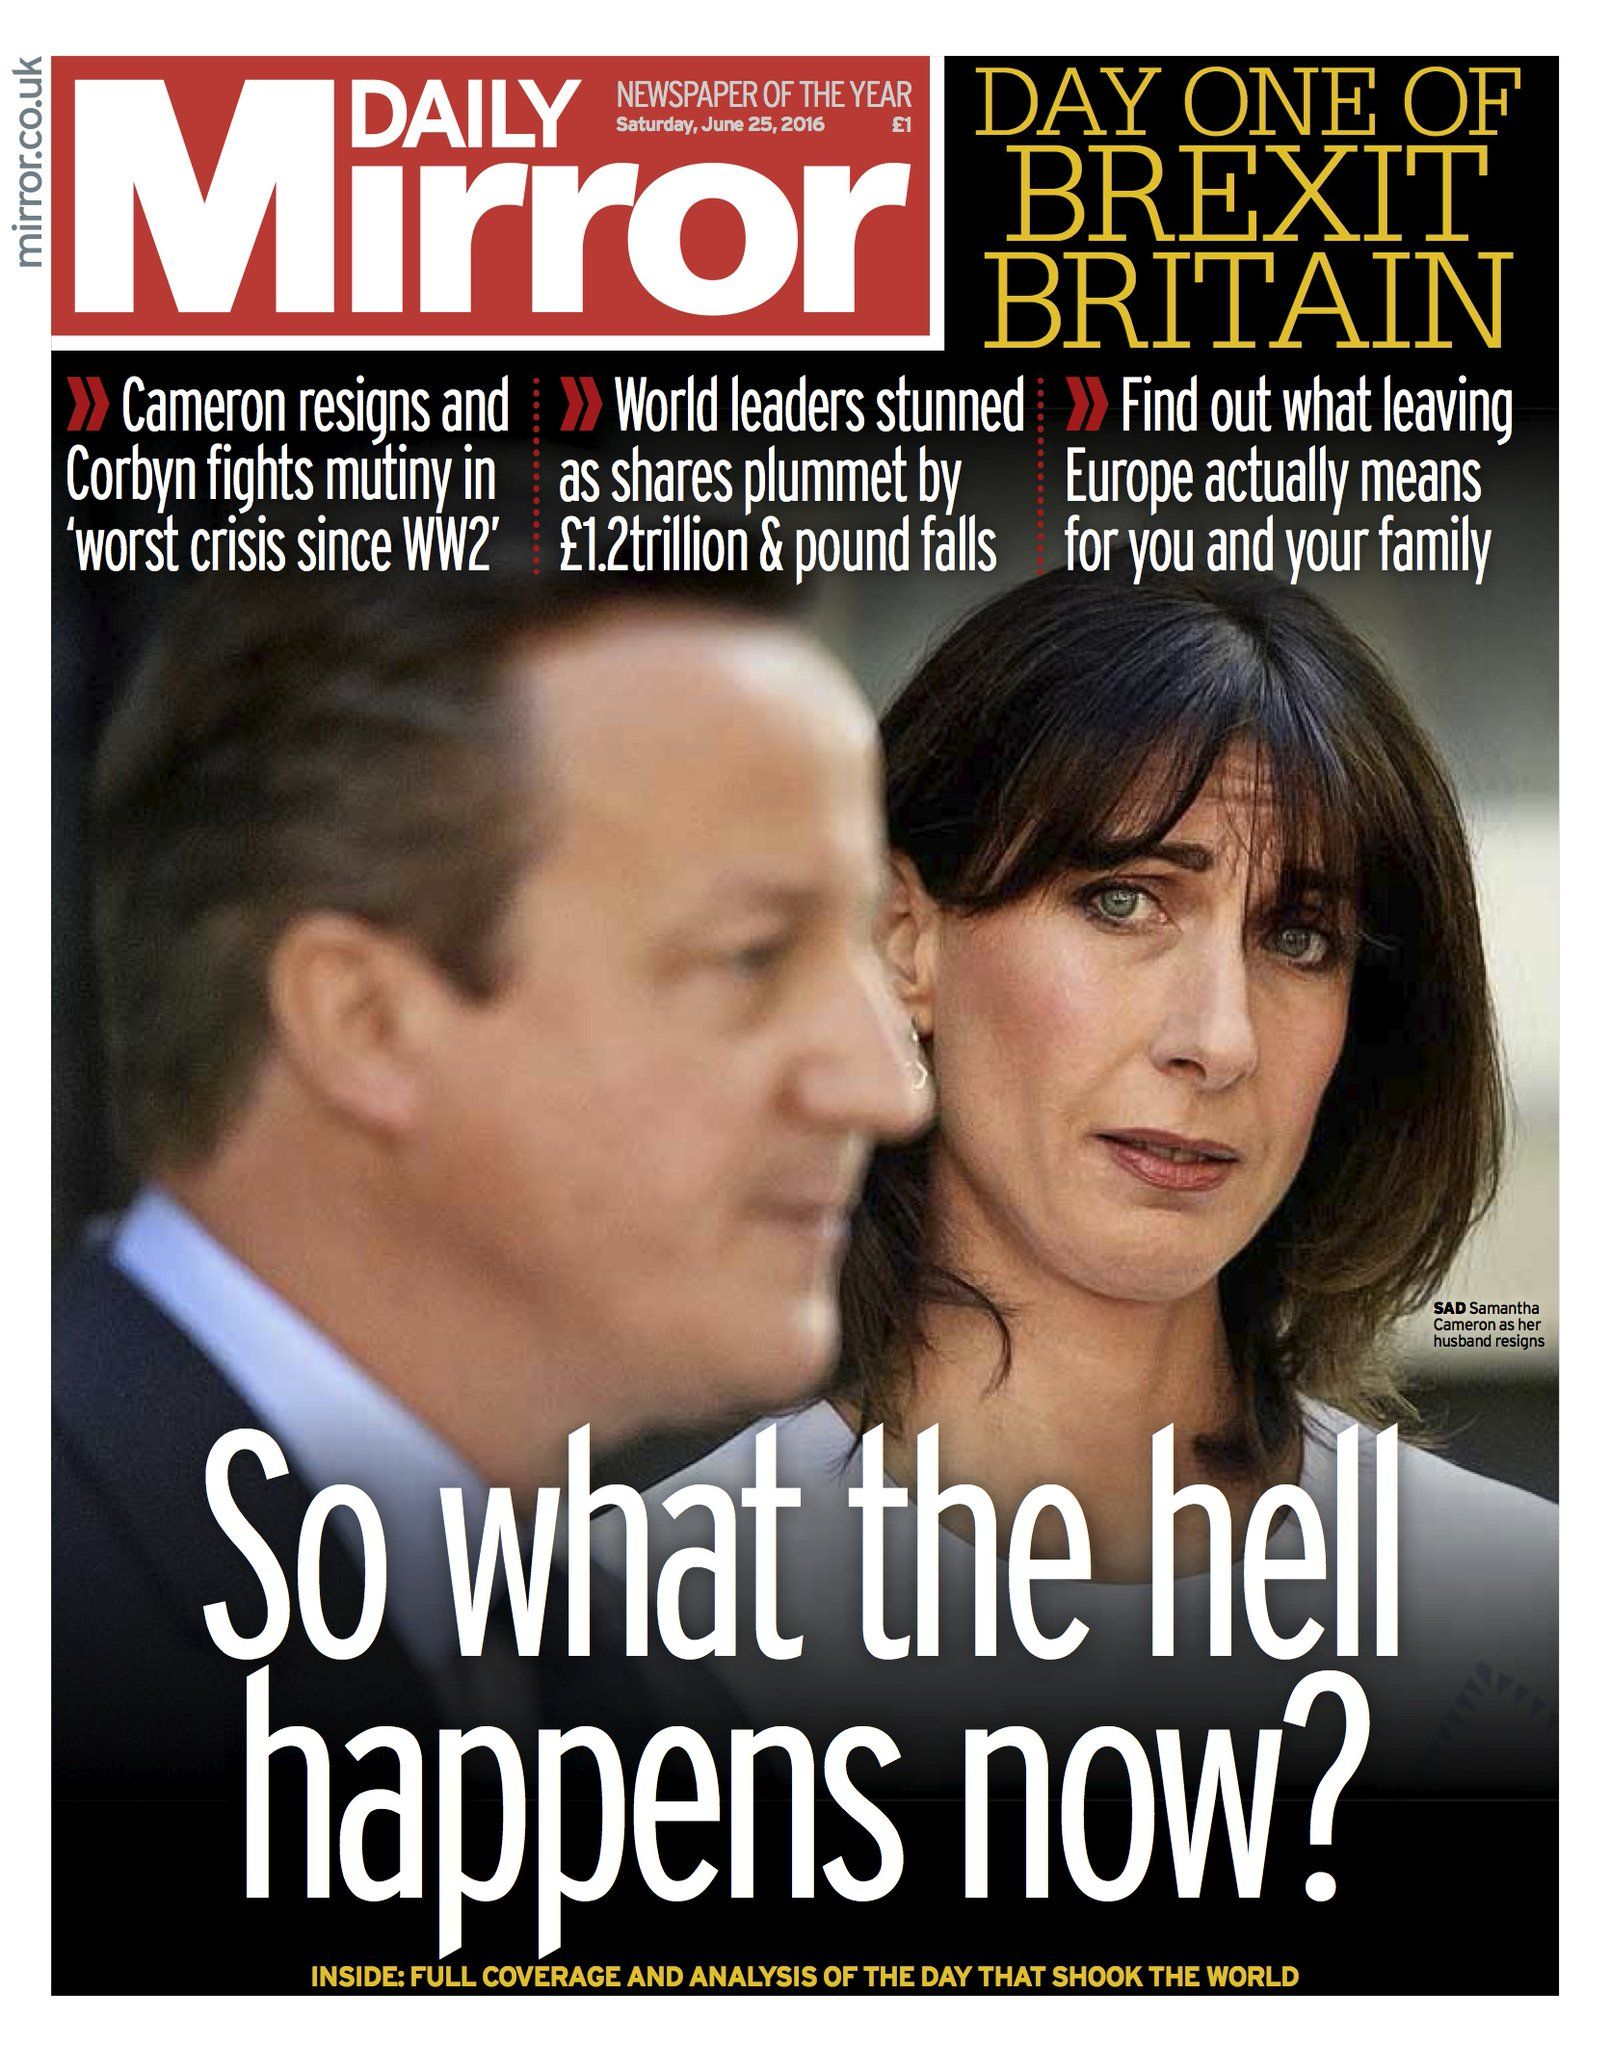 Daily Mirror on Brexit, Britain, Newspaper front pages